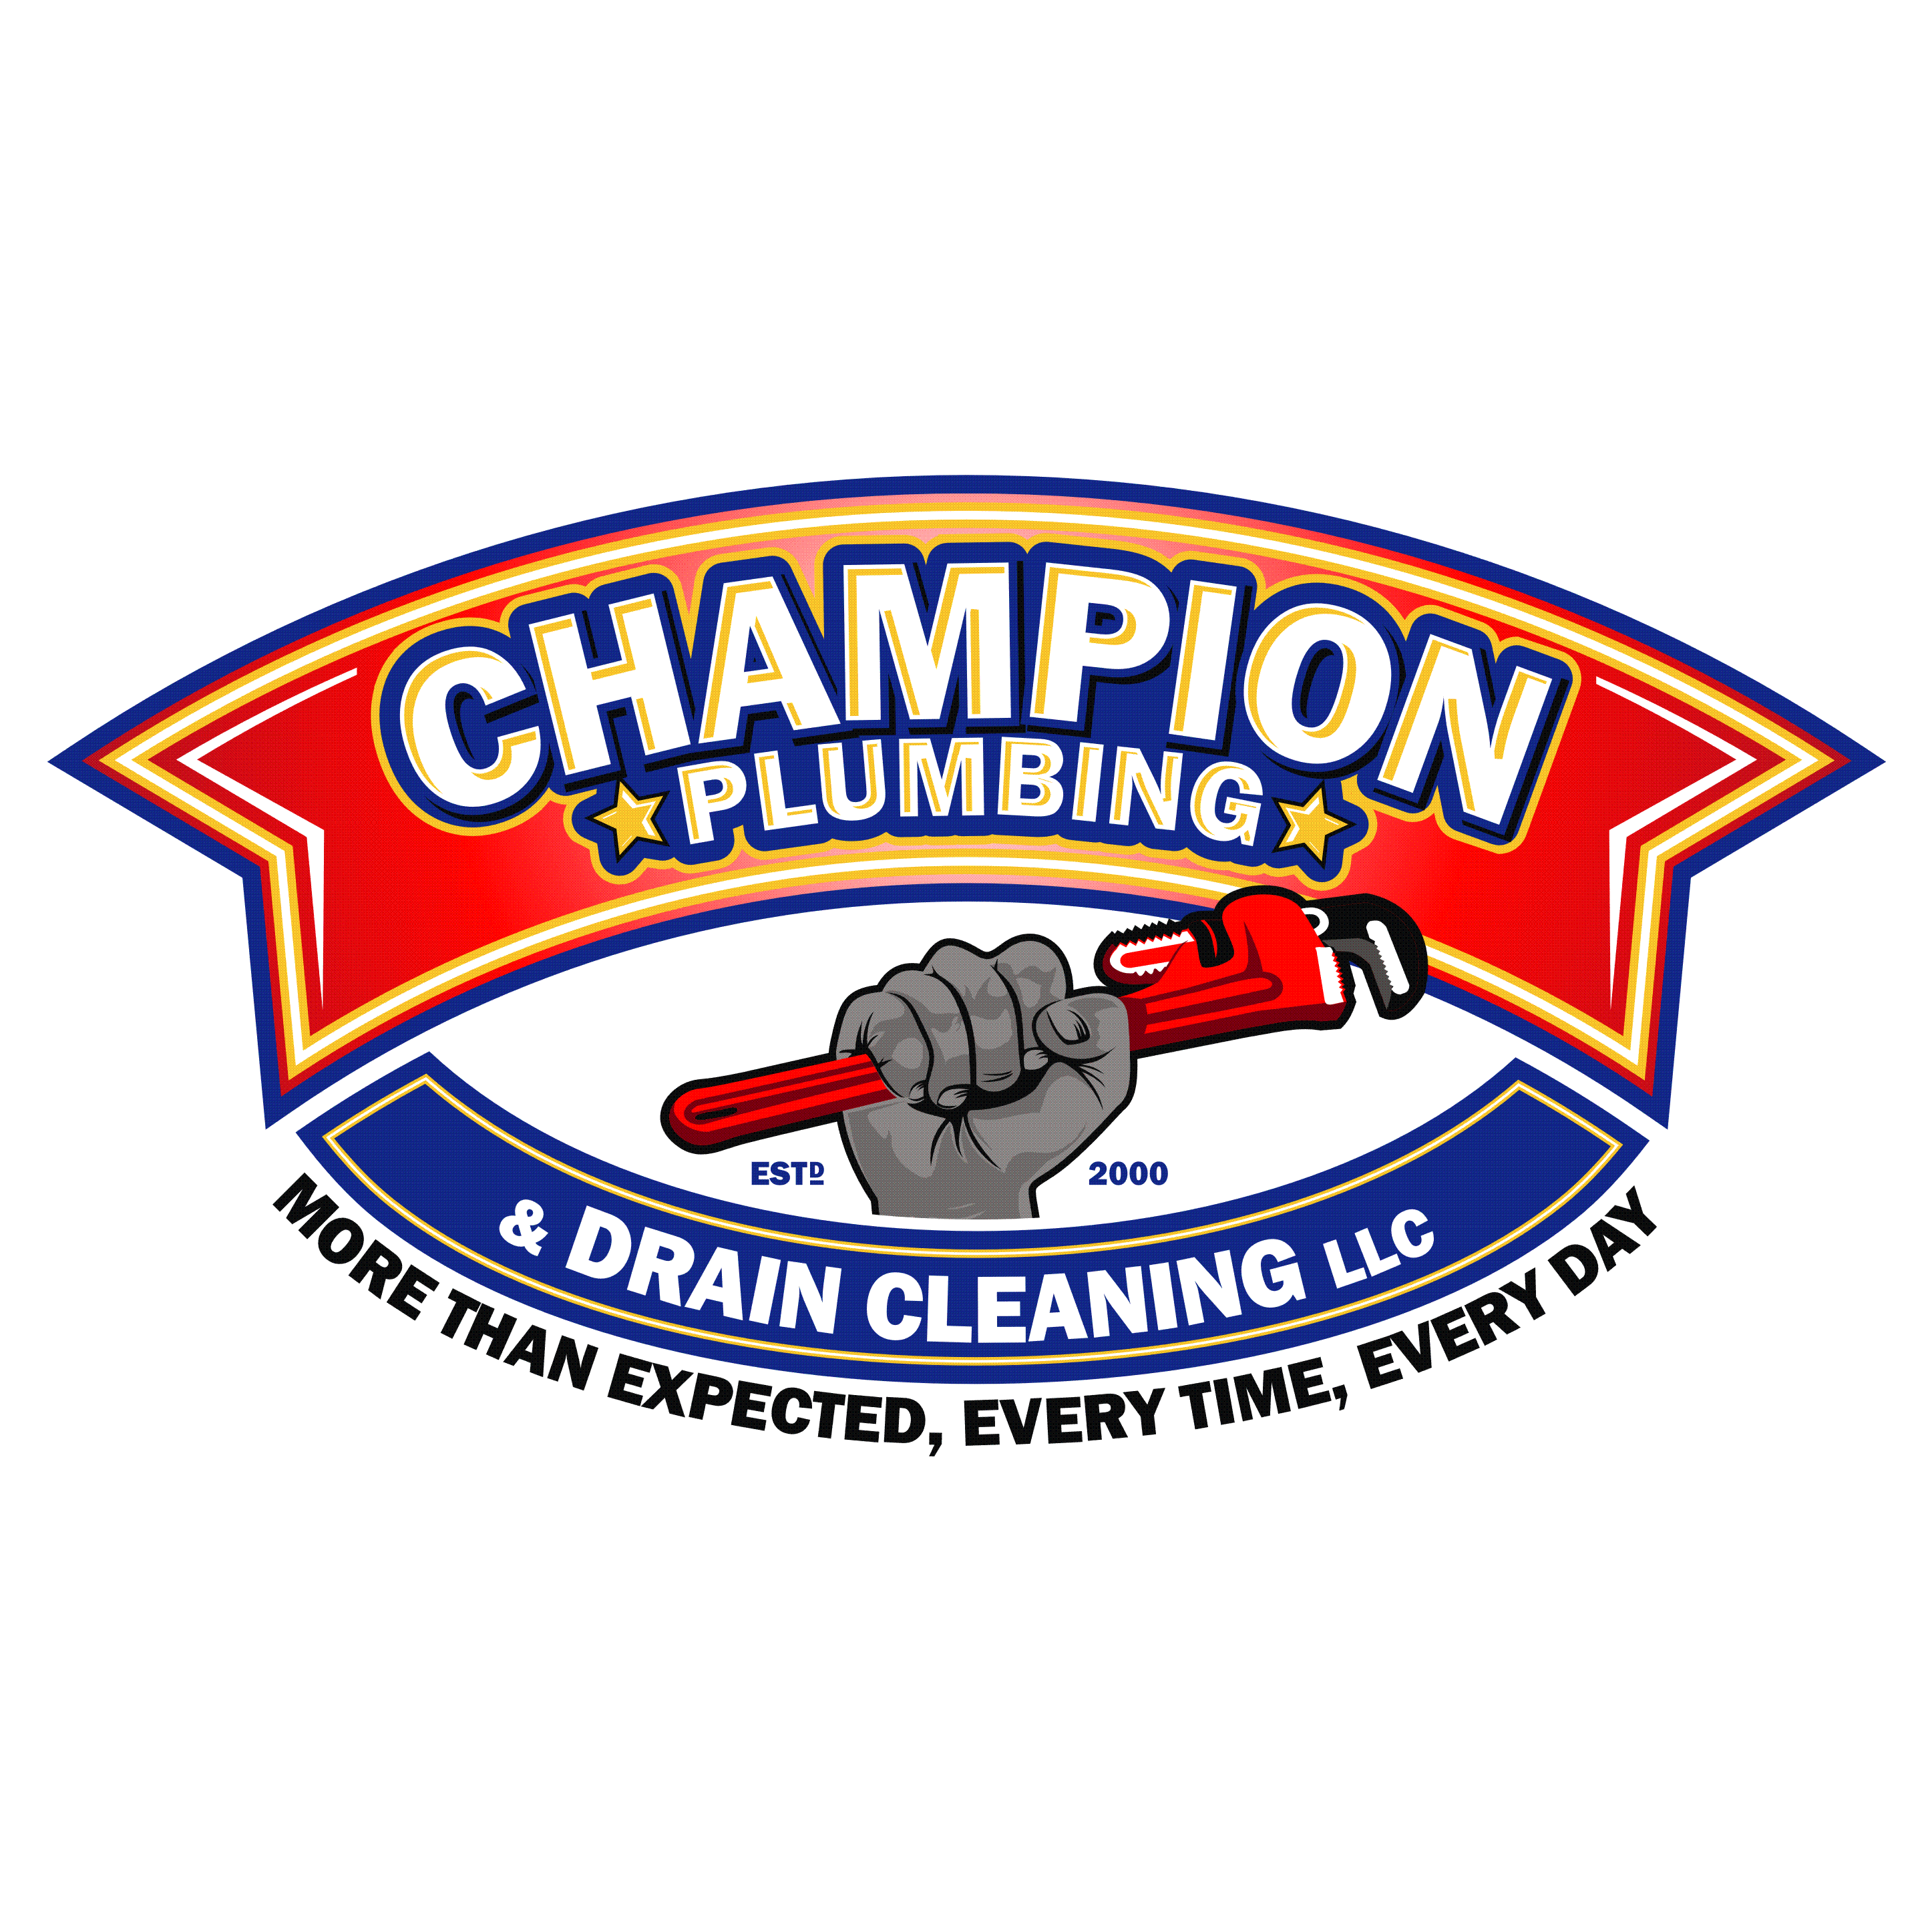 Champion Plumbing & Drain Cleaning